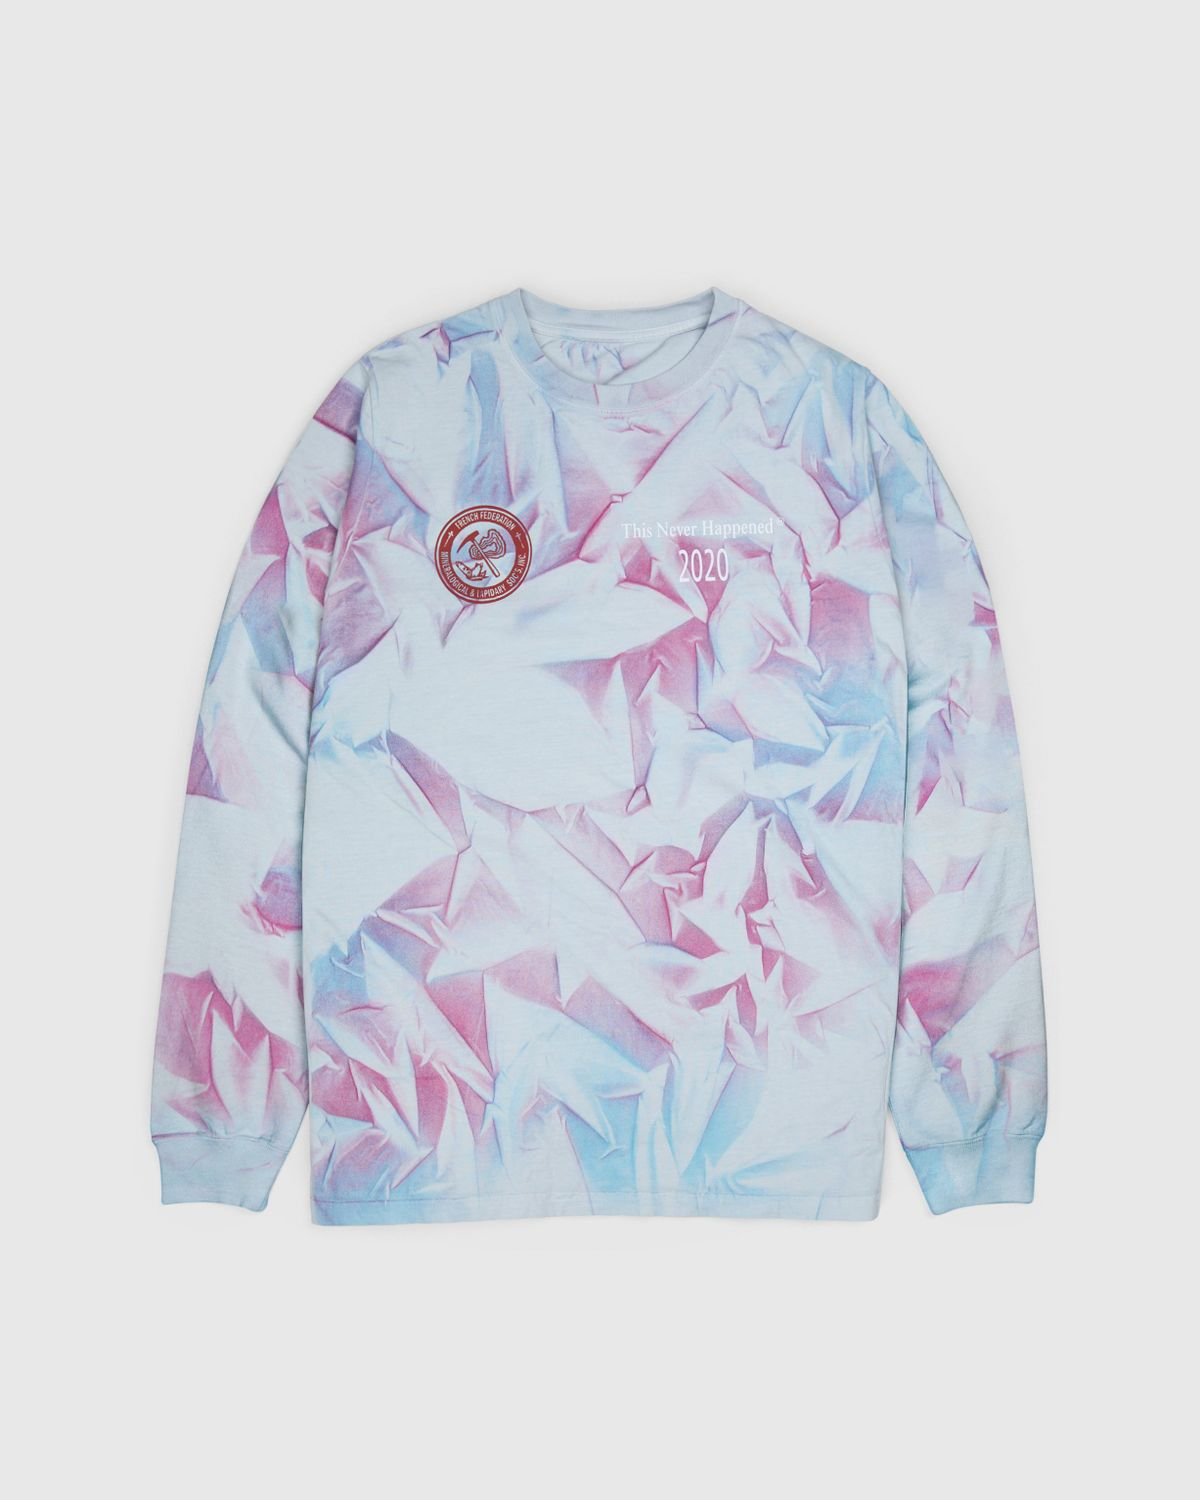 Highsnobiety —This Never Happened Minerals & Stones Fair Longsleeve Tie Dye - Image 2